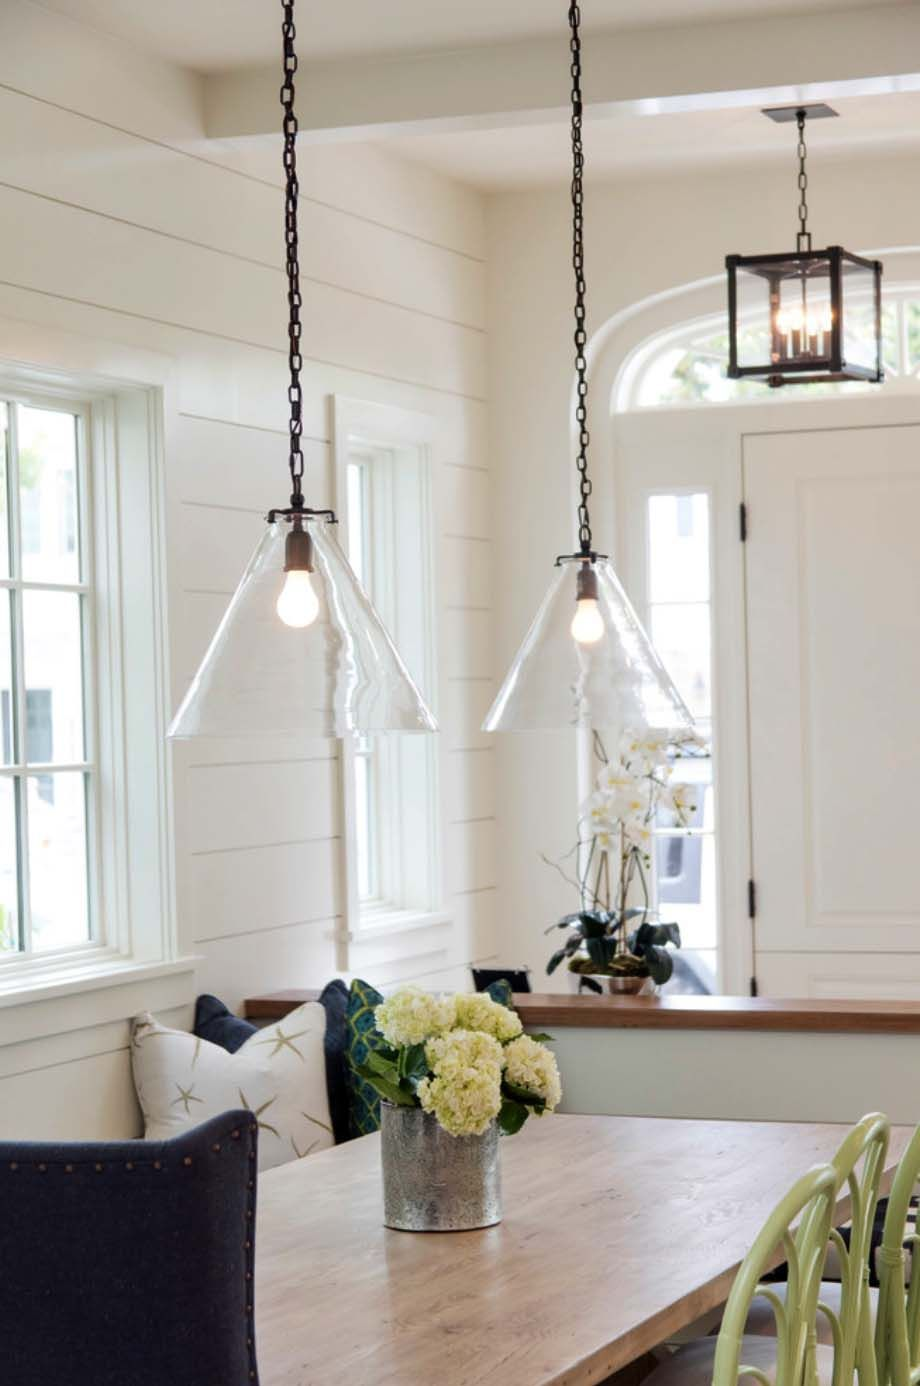 A Hamptons inspired beach style home along